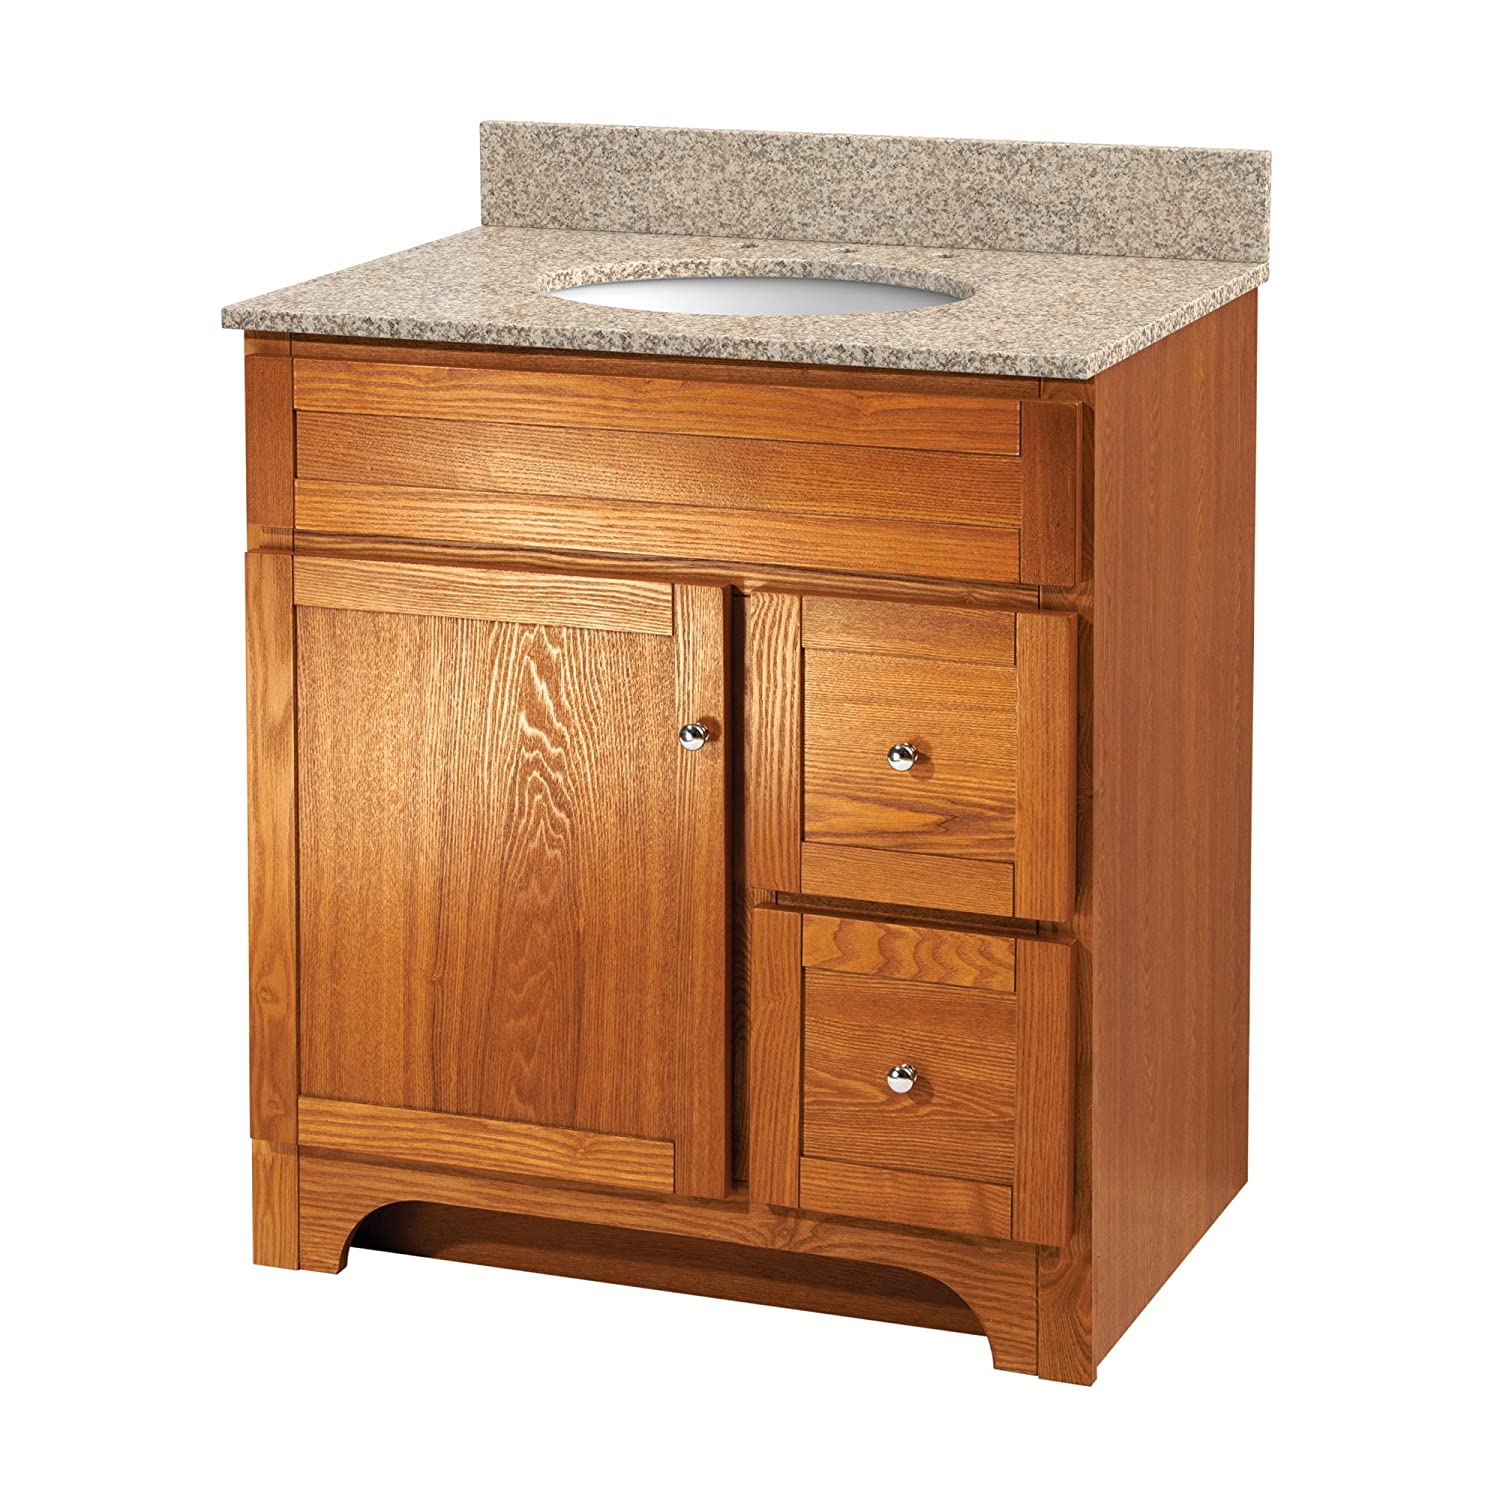 new drawers vanity archive in vanities diamond amazon shop freshfit tag common on bathroom white with calhoun